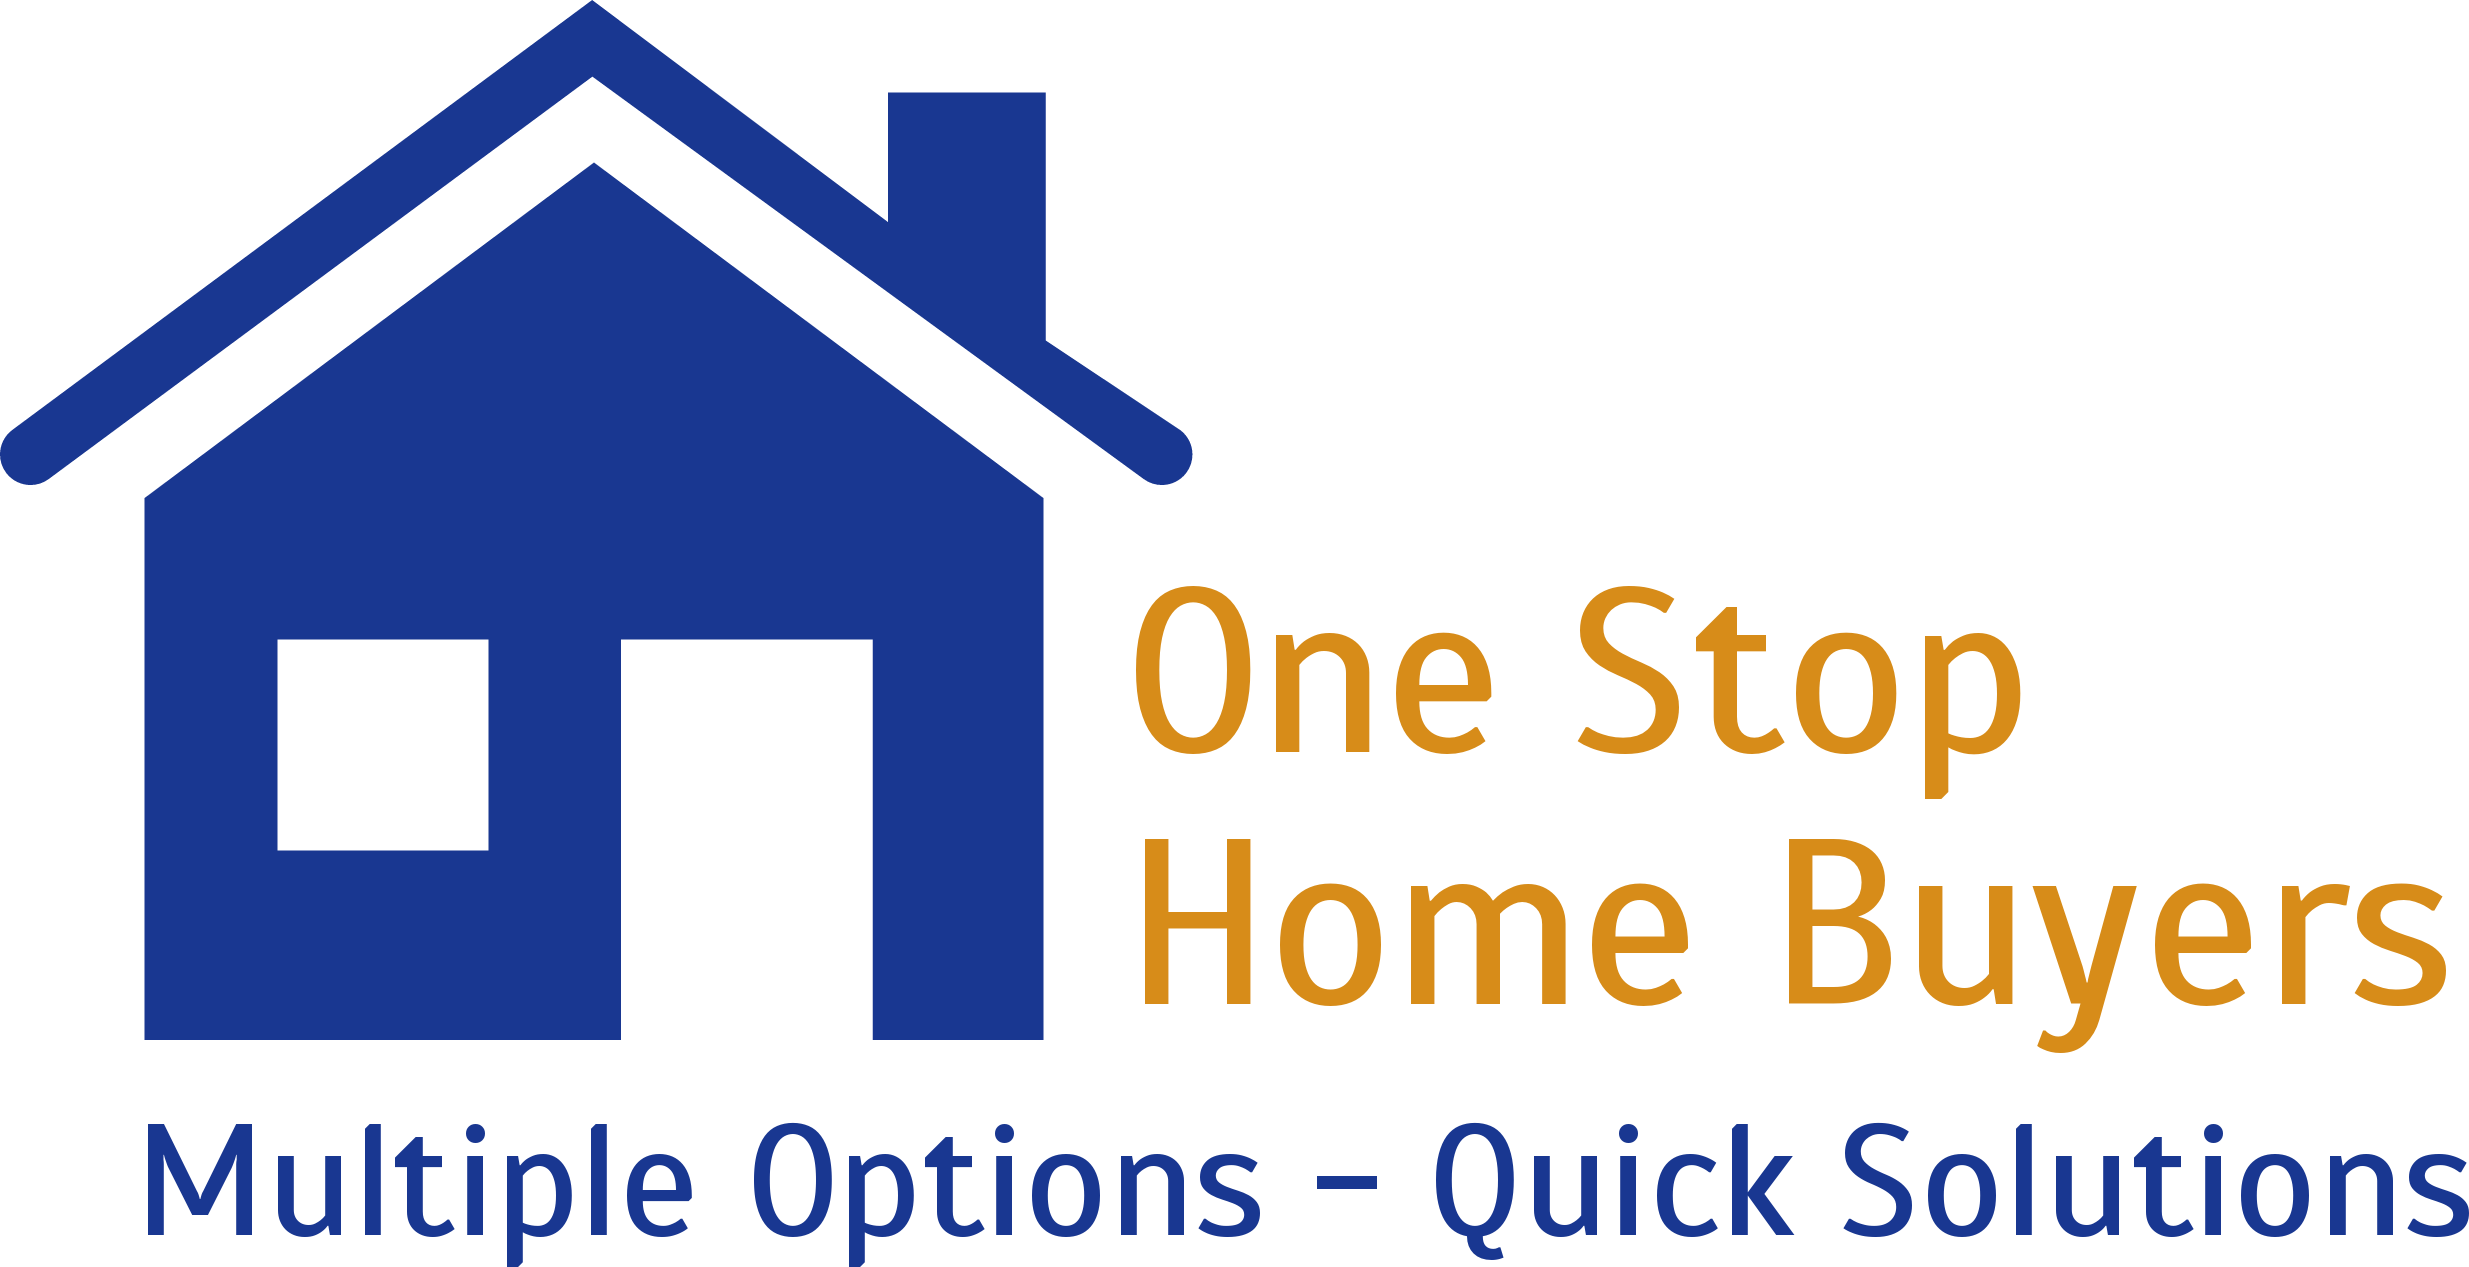 One Stop Home Buyers